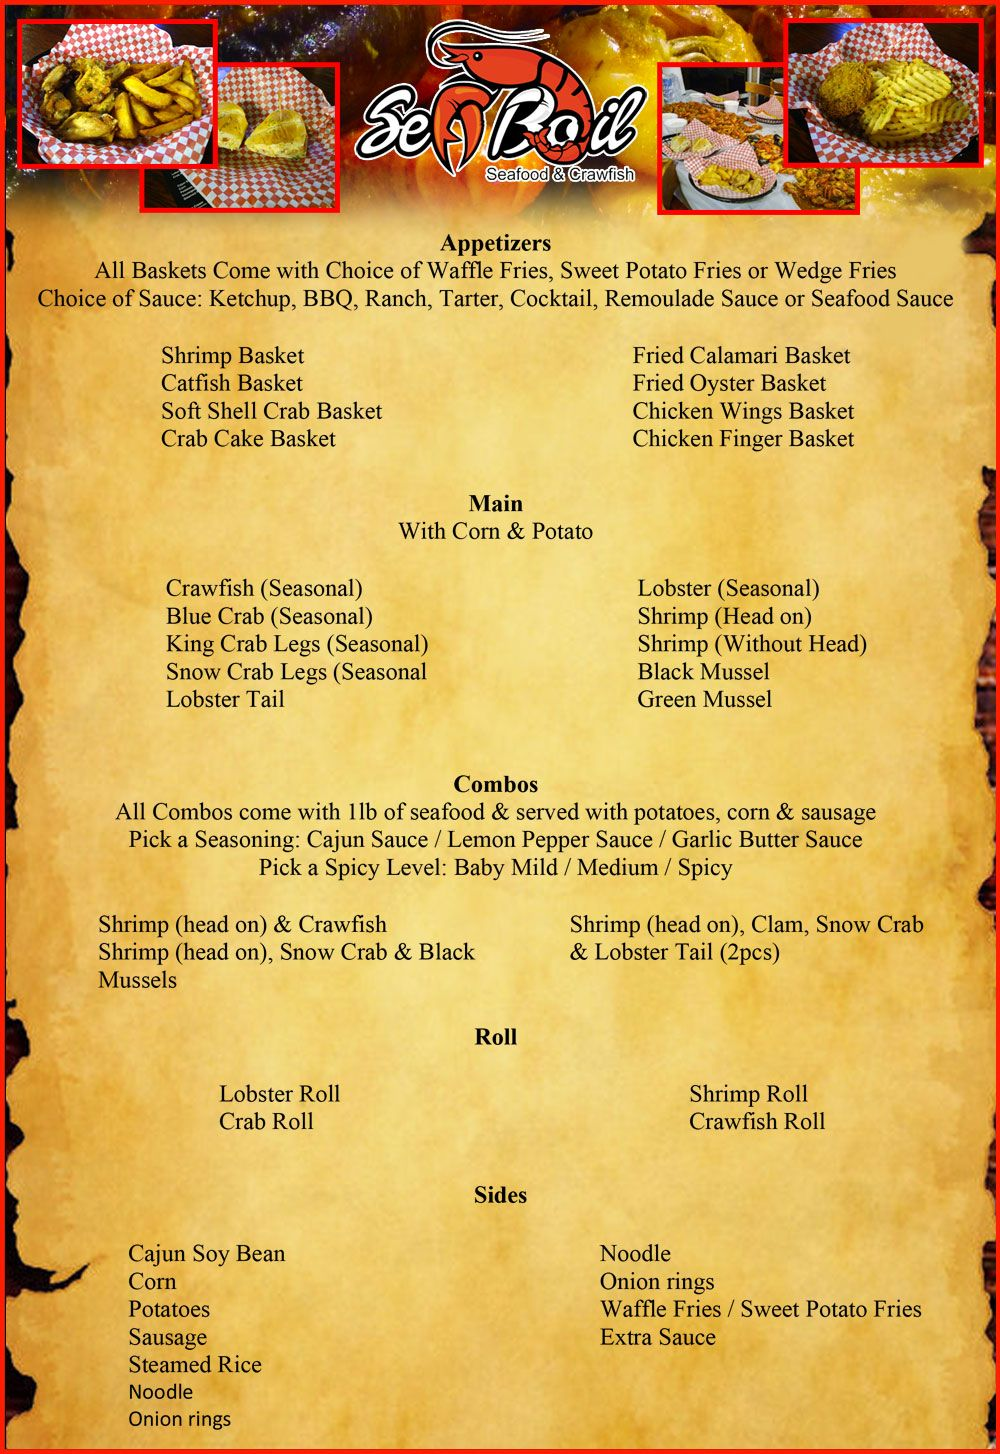 Sea Boil Seafood And Cajun Crawfish Restaurant Menu Daytona Beach Restaurants